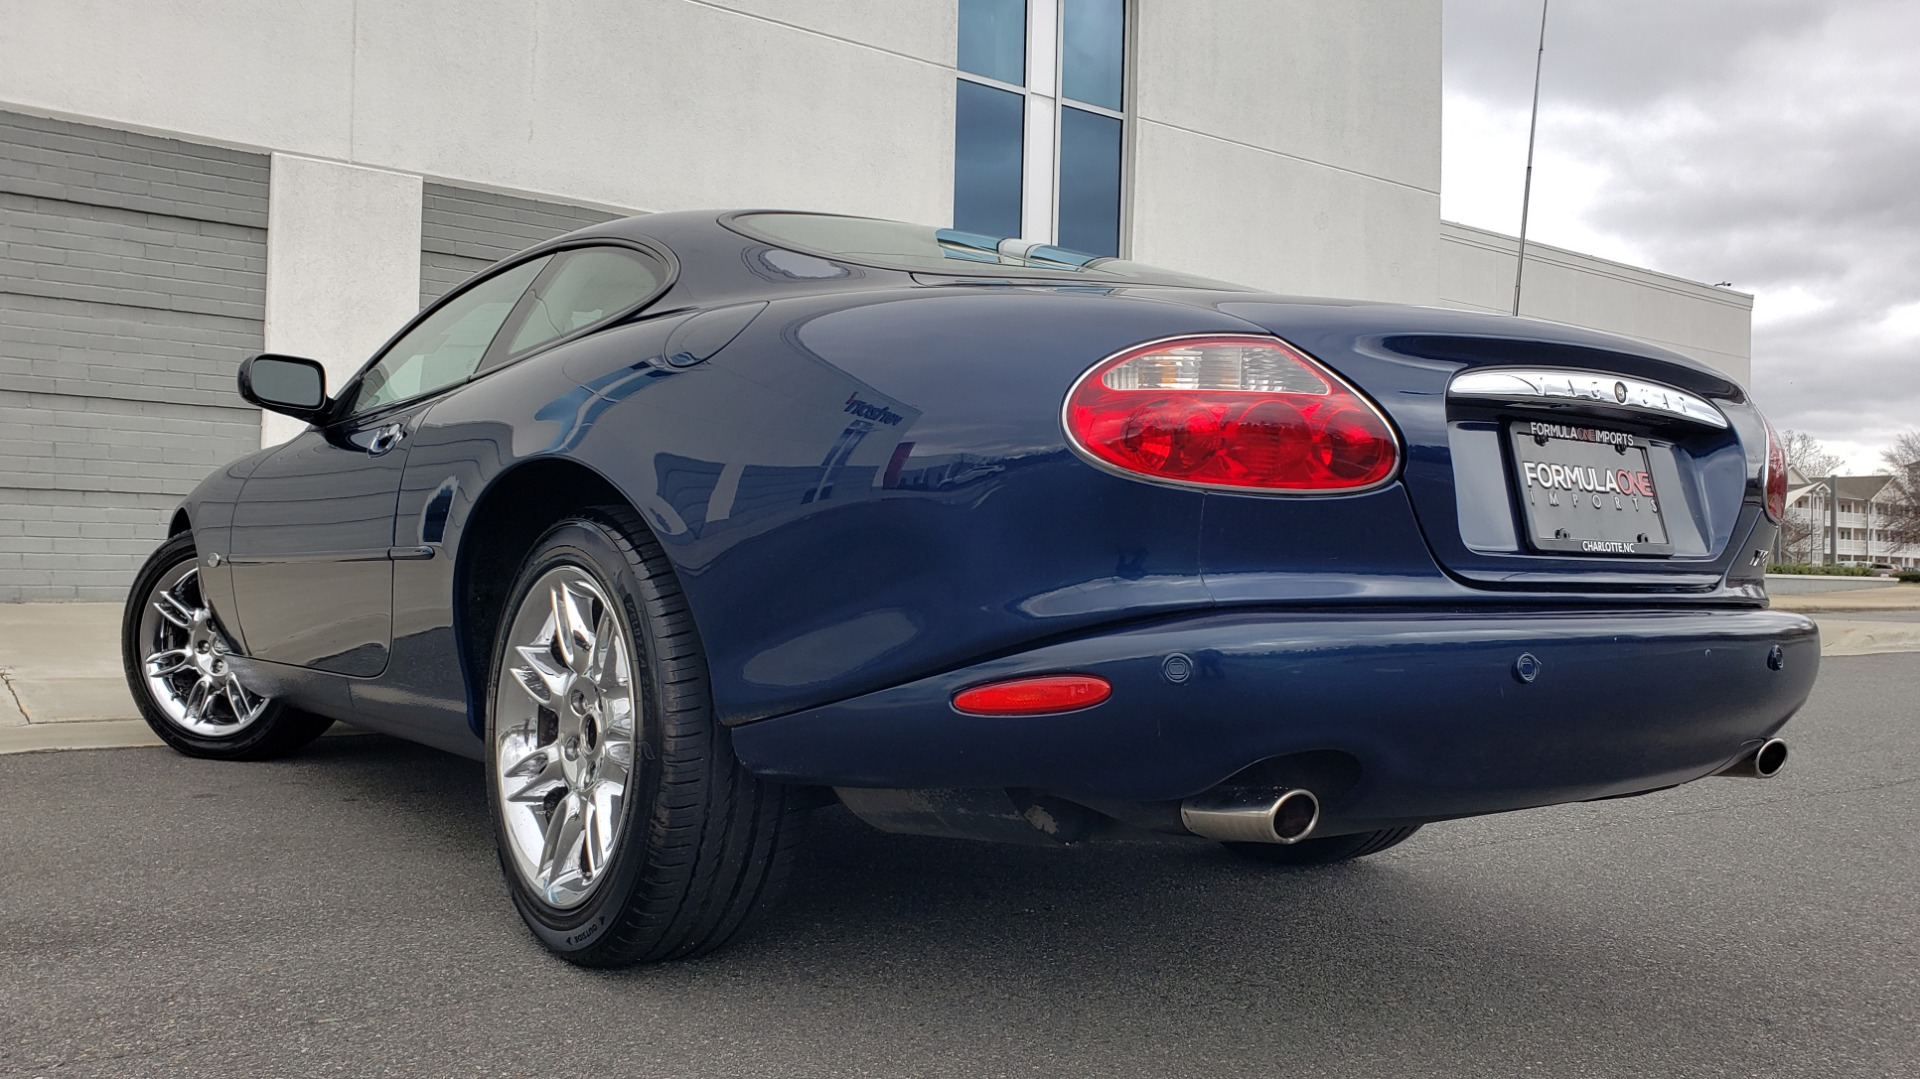 Used 2002 Jaguar XK8 COUPE / 4.0L V8 / 5-SPD AUTO / ALPINE SOUND / 18IN CHROME WHEELS for sale $16,450 at Formula Imports in Charlotte NC 28227 2